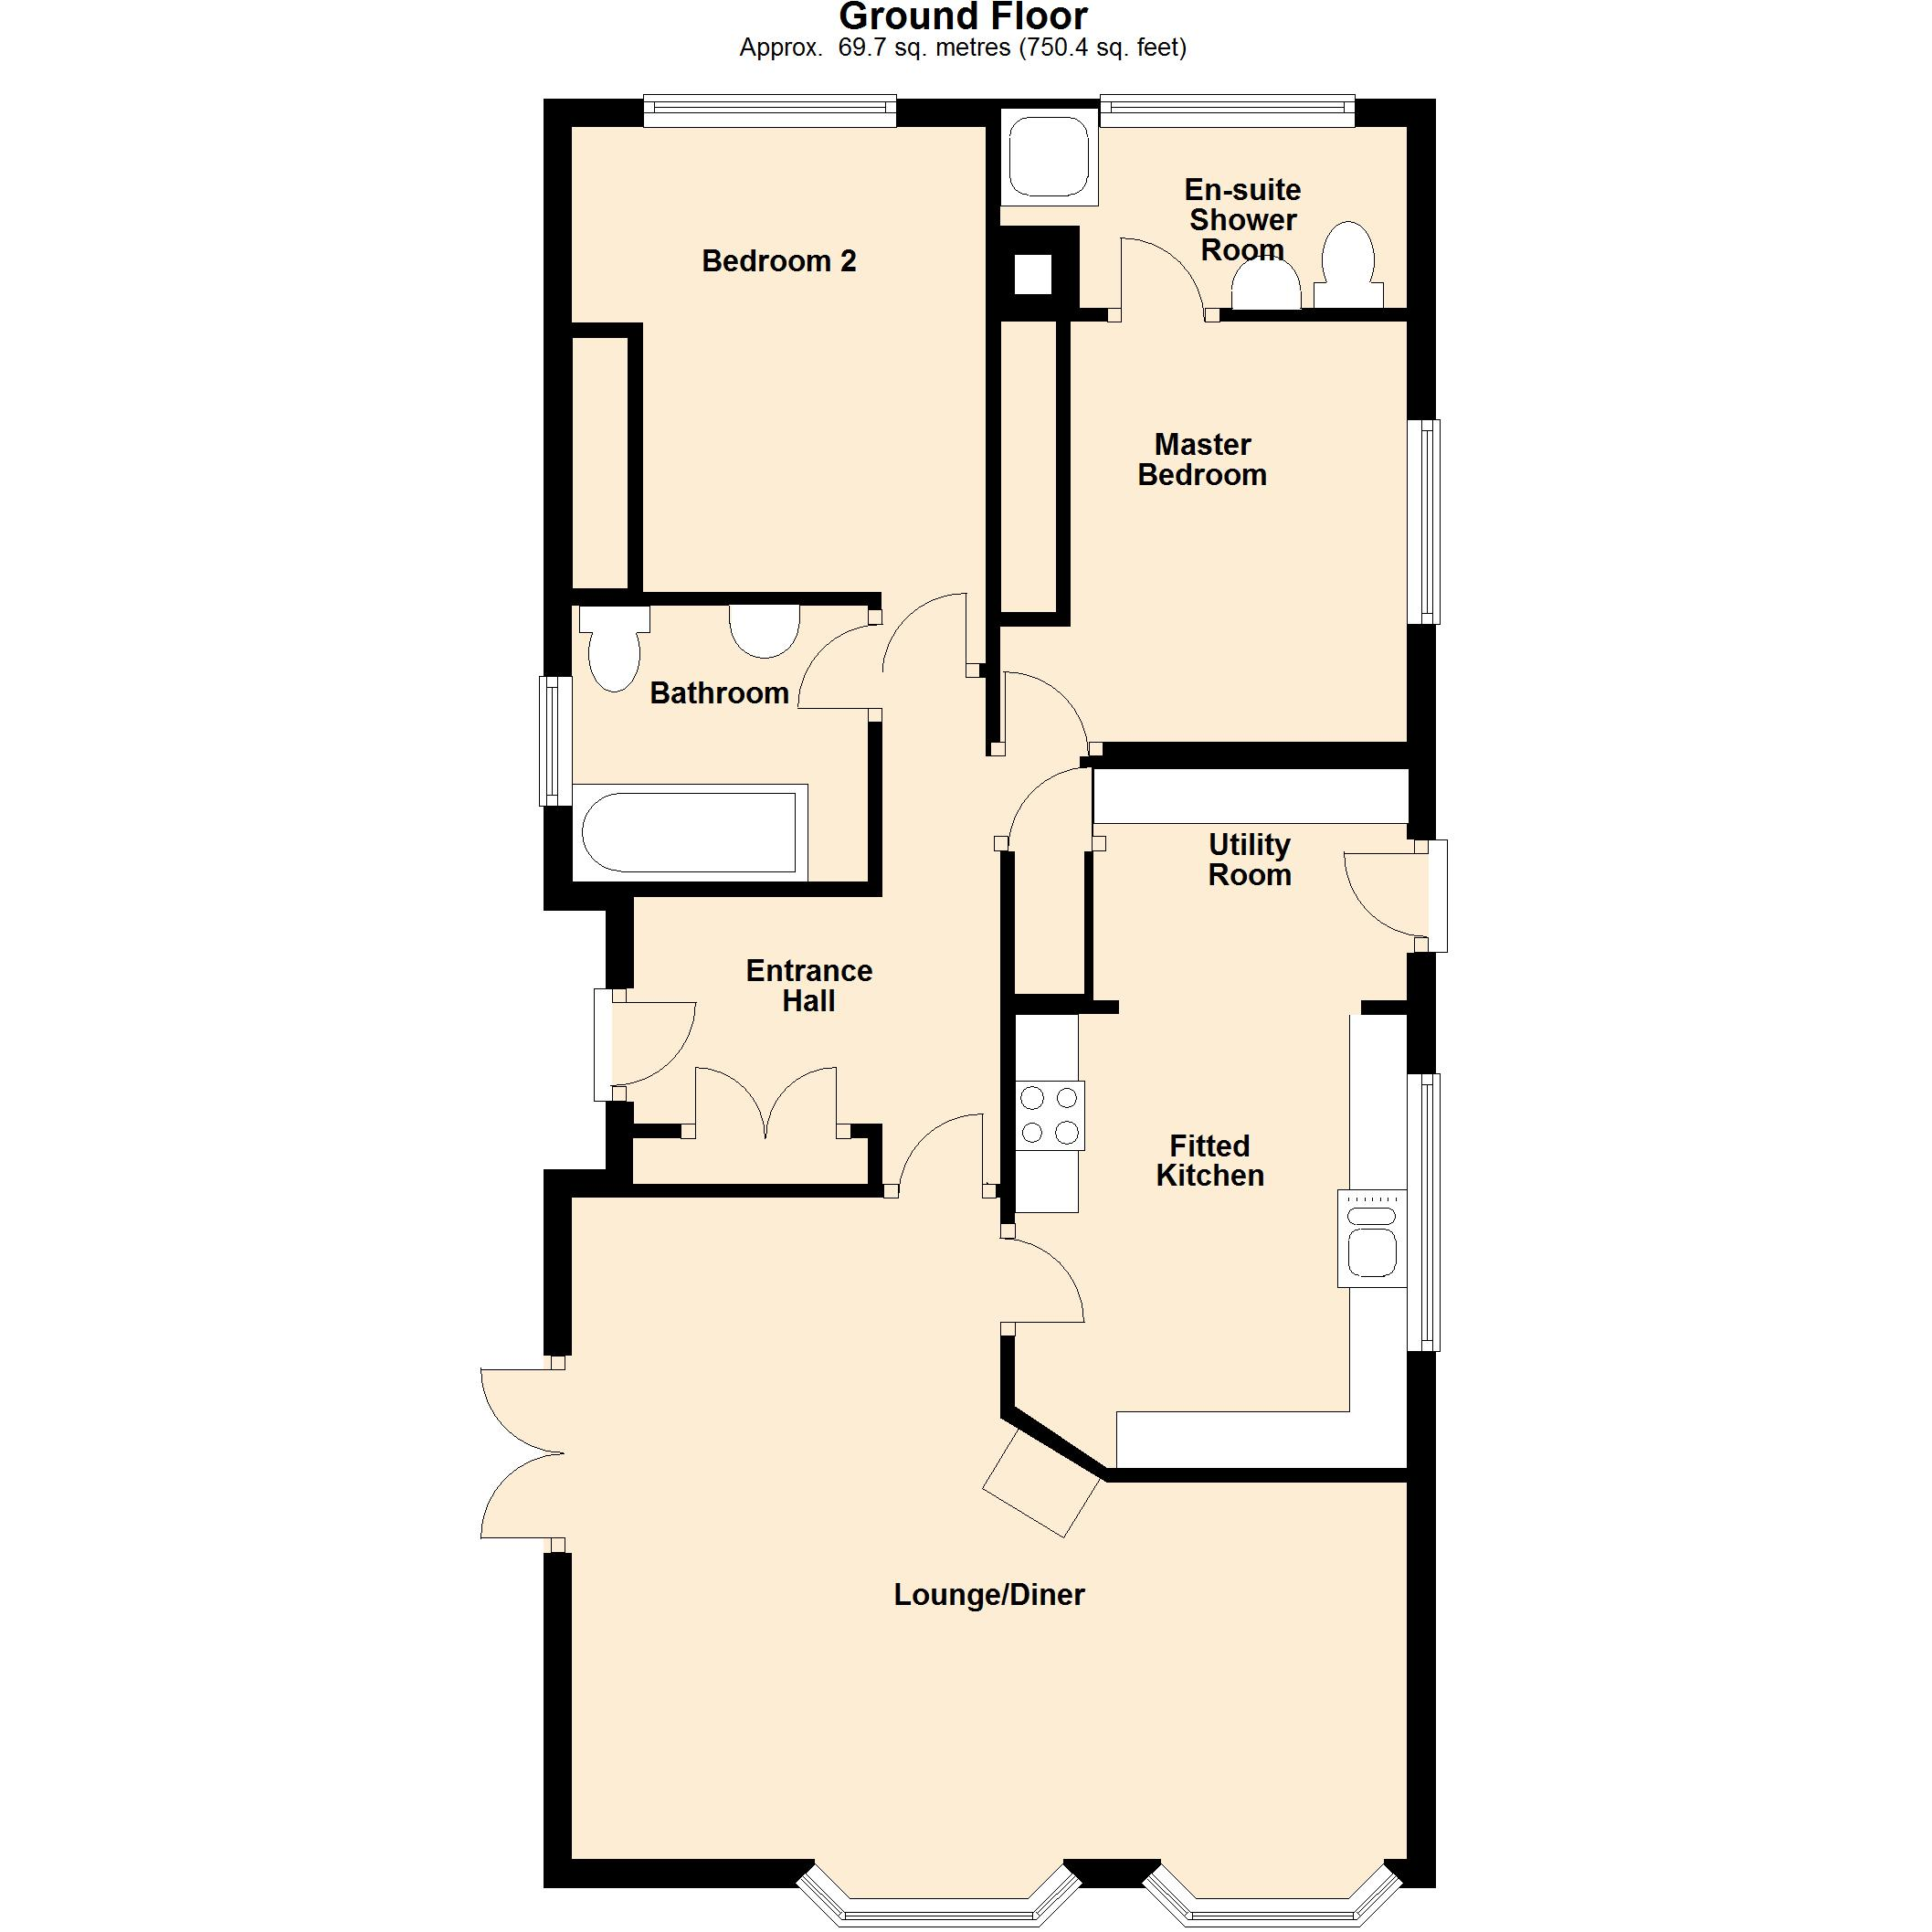 40x20 house plans house design plans for Create your house plan